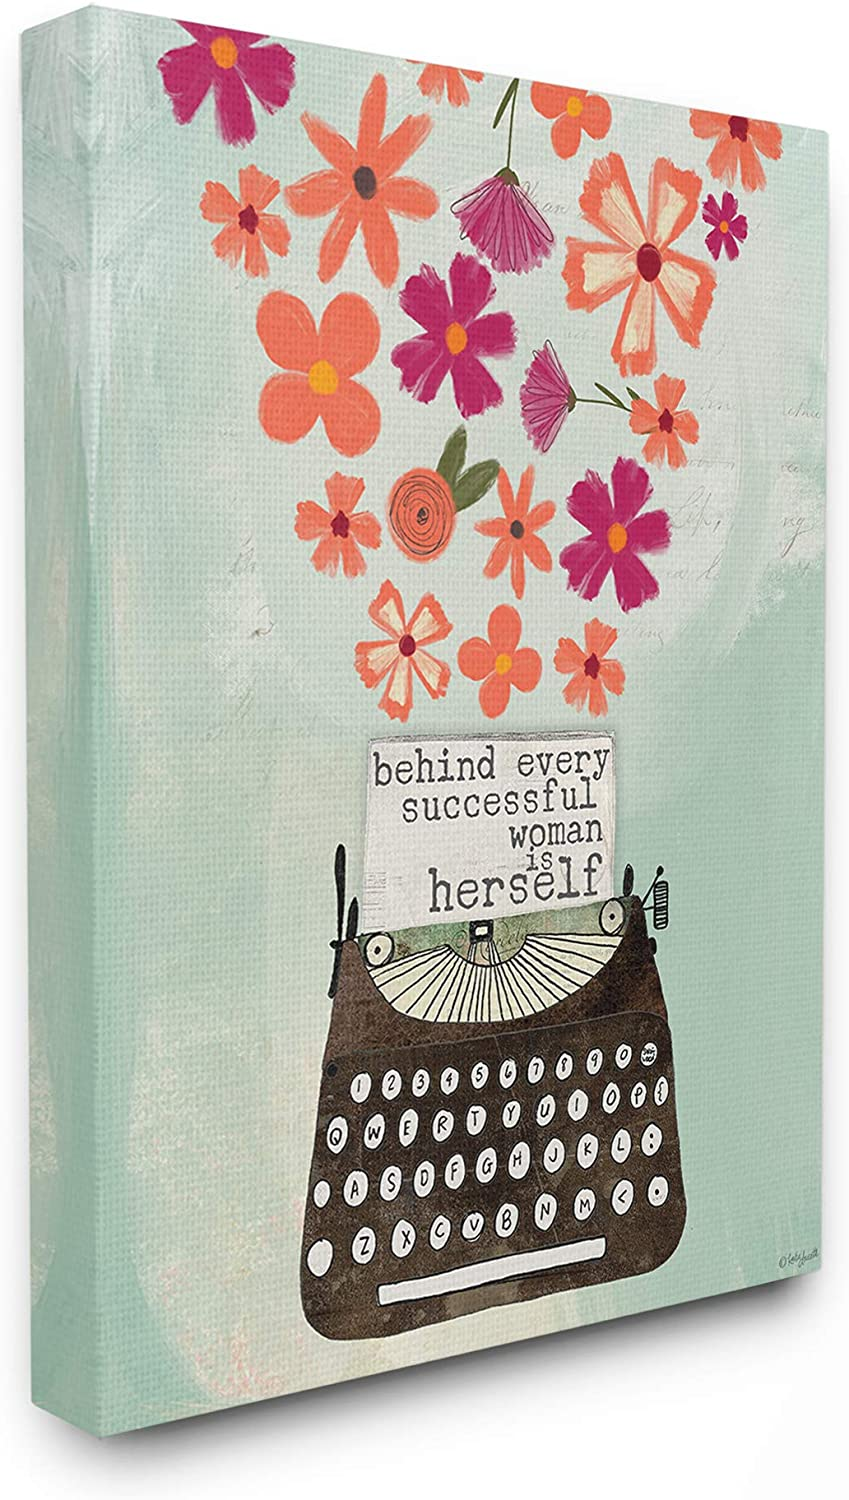 The Stupell Home Decor Successful Woman Pink and orange Floral Explosion Typewriter Stretched Canvas Wall Art 11x14 Multi-color